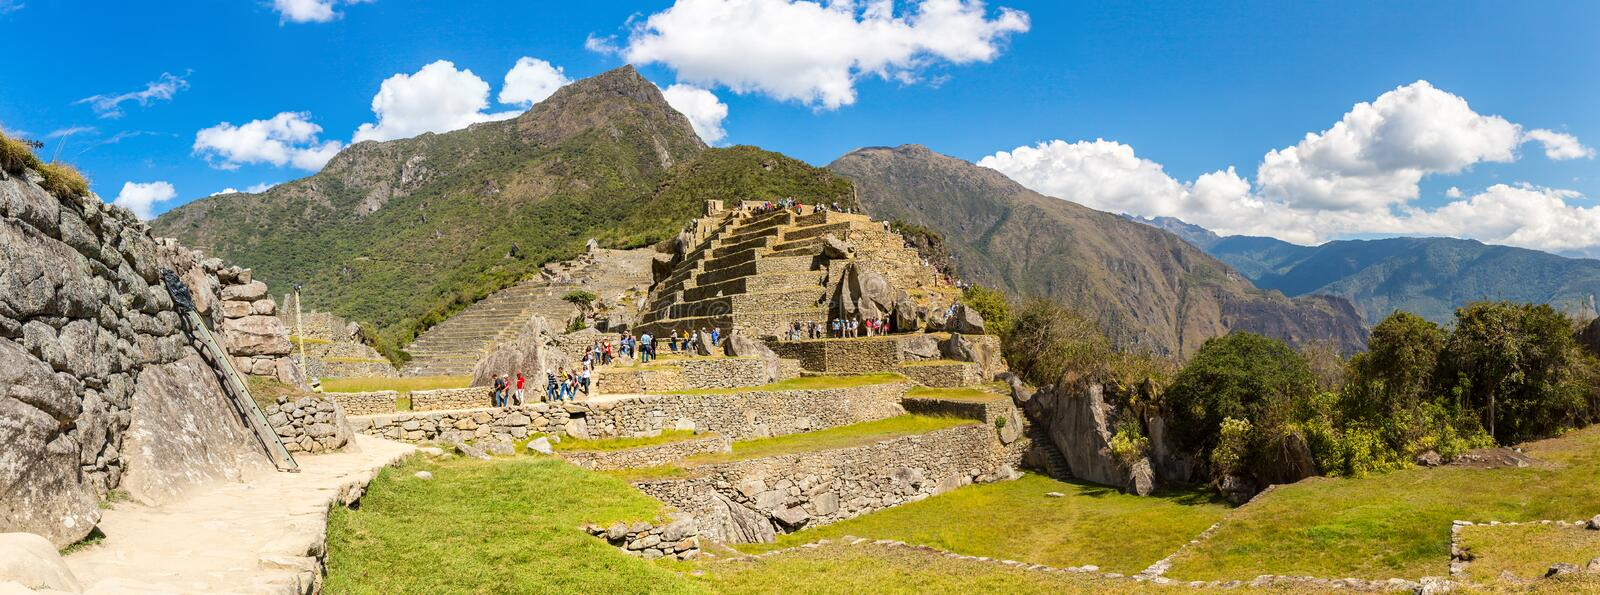 Panorama da cidade misteriosa - Machu Picchu, Peru, Ámérica do Sul. As ruínas Incan. fotografia de stock royalty free